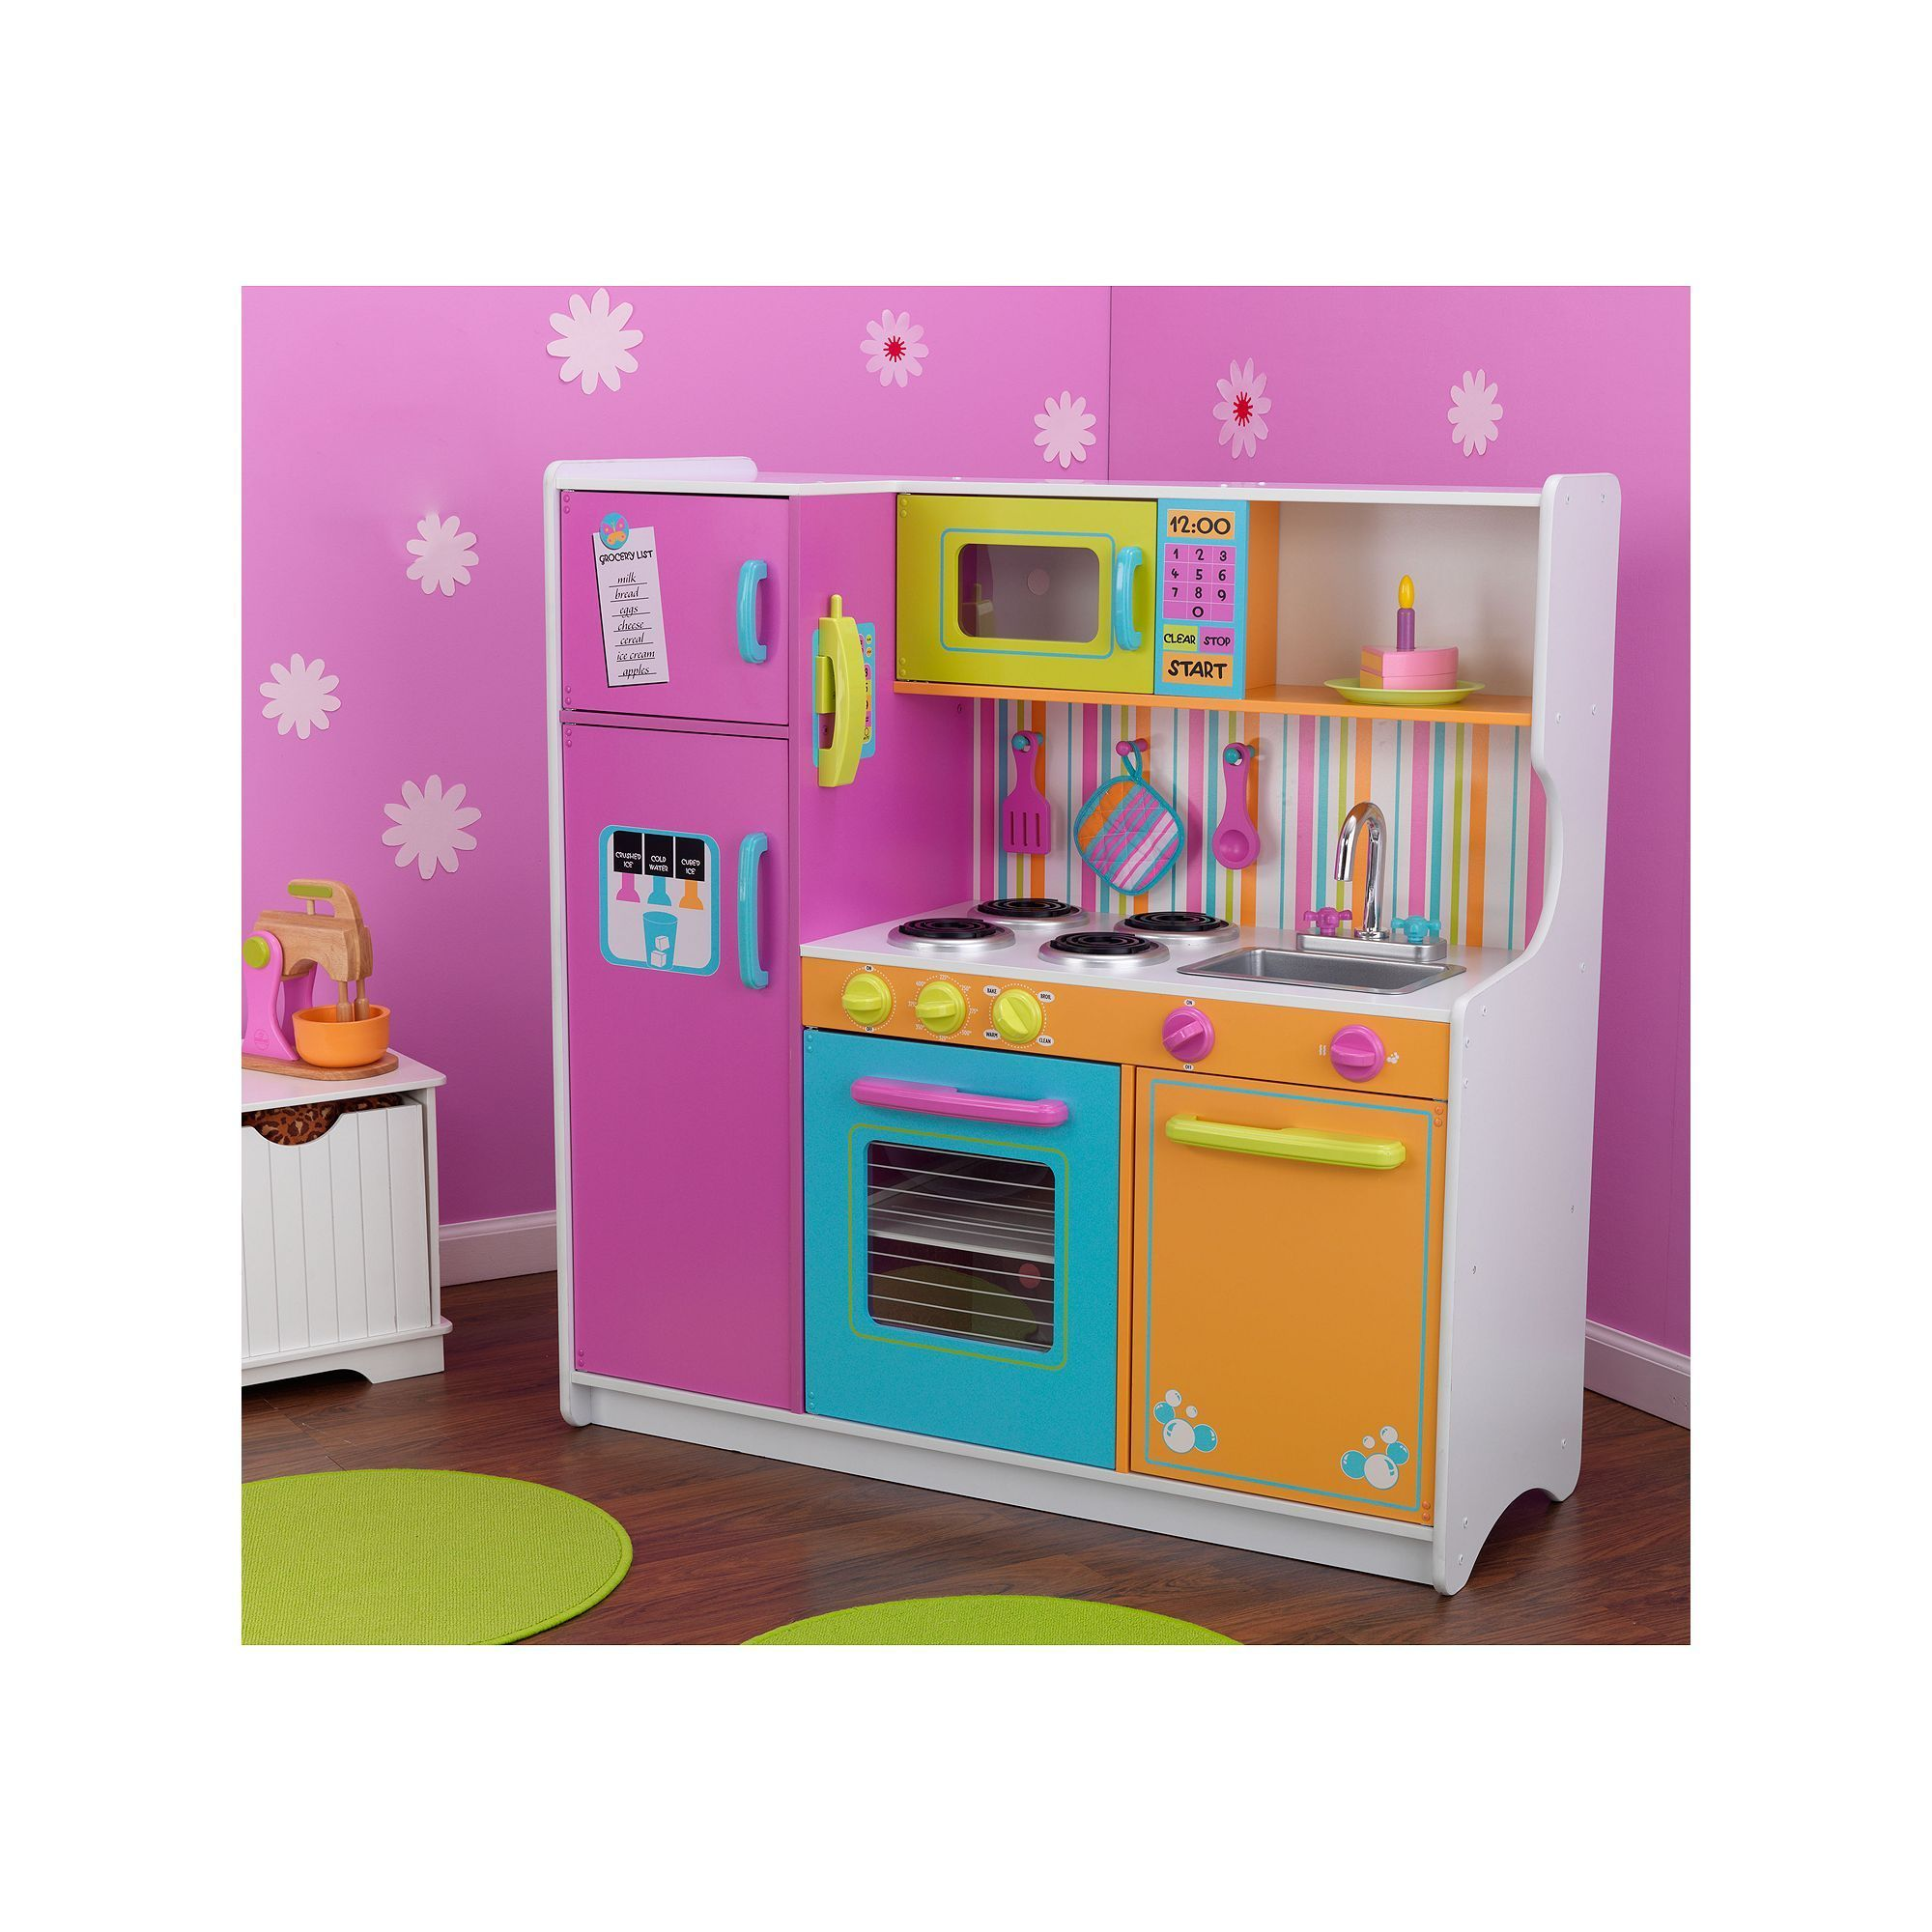 KidKraft Deluxe Big and Bright Kitchen Playset, Multicolor ...